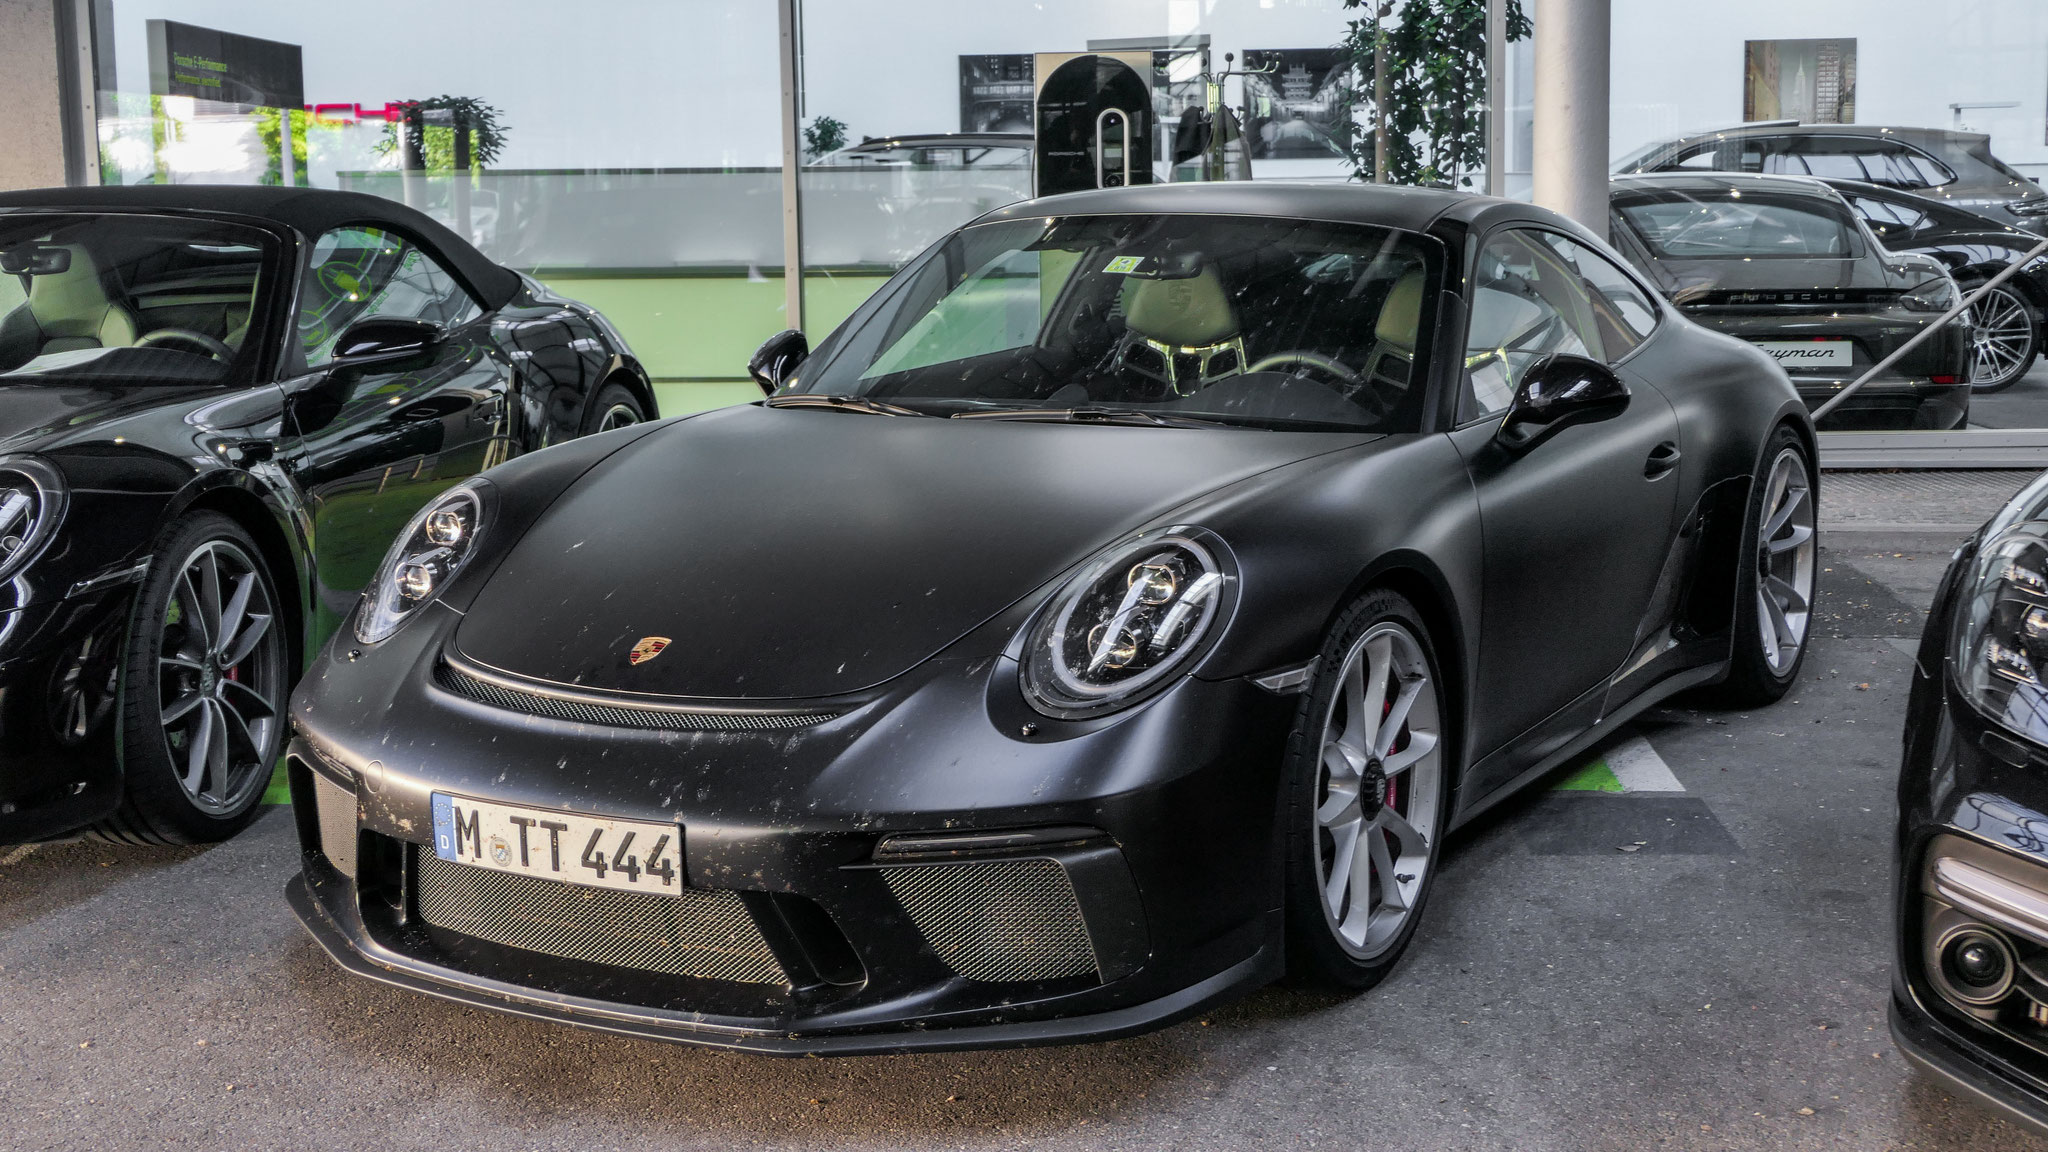 Porsche 991 GT3 Touring Package - M-TT-444